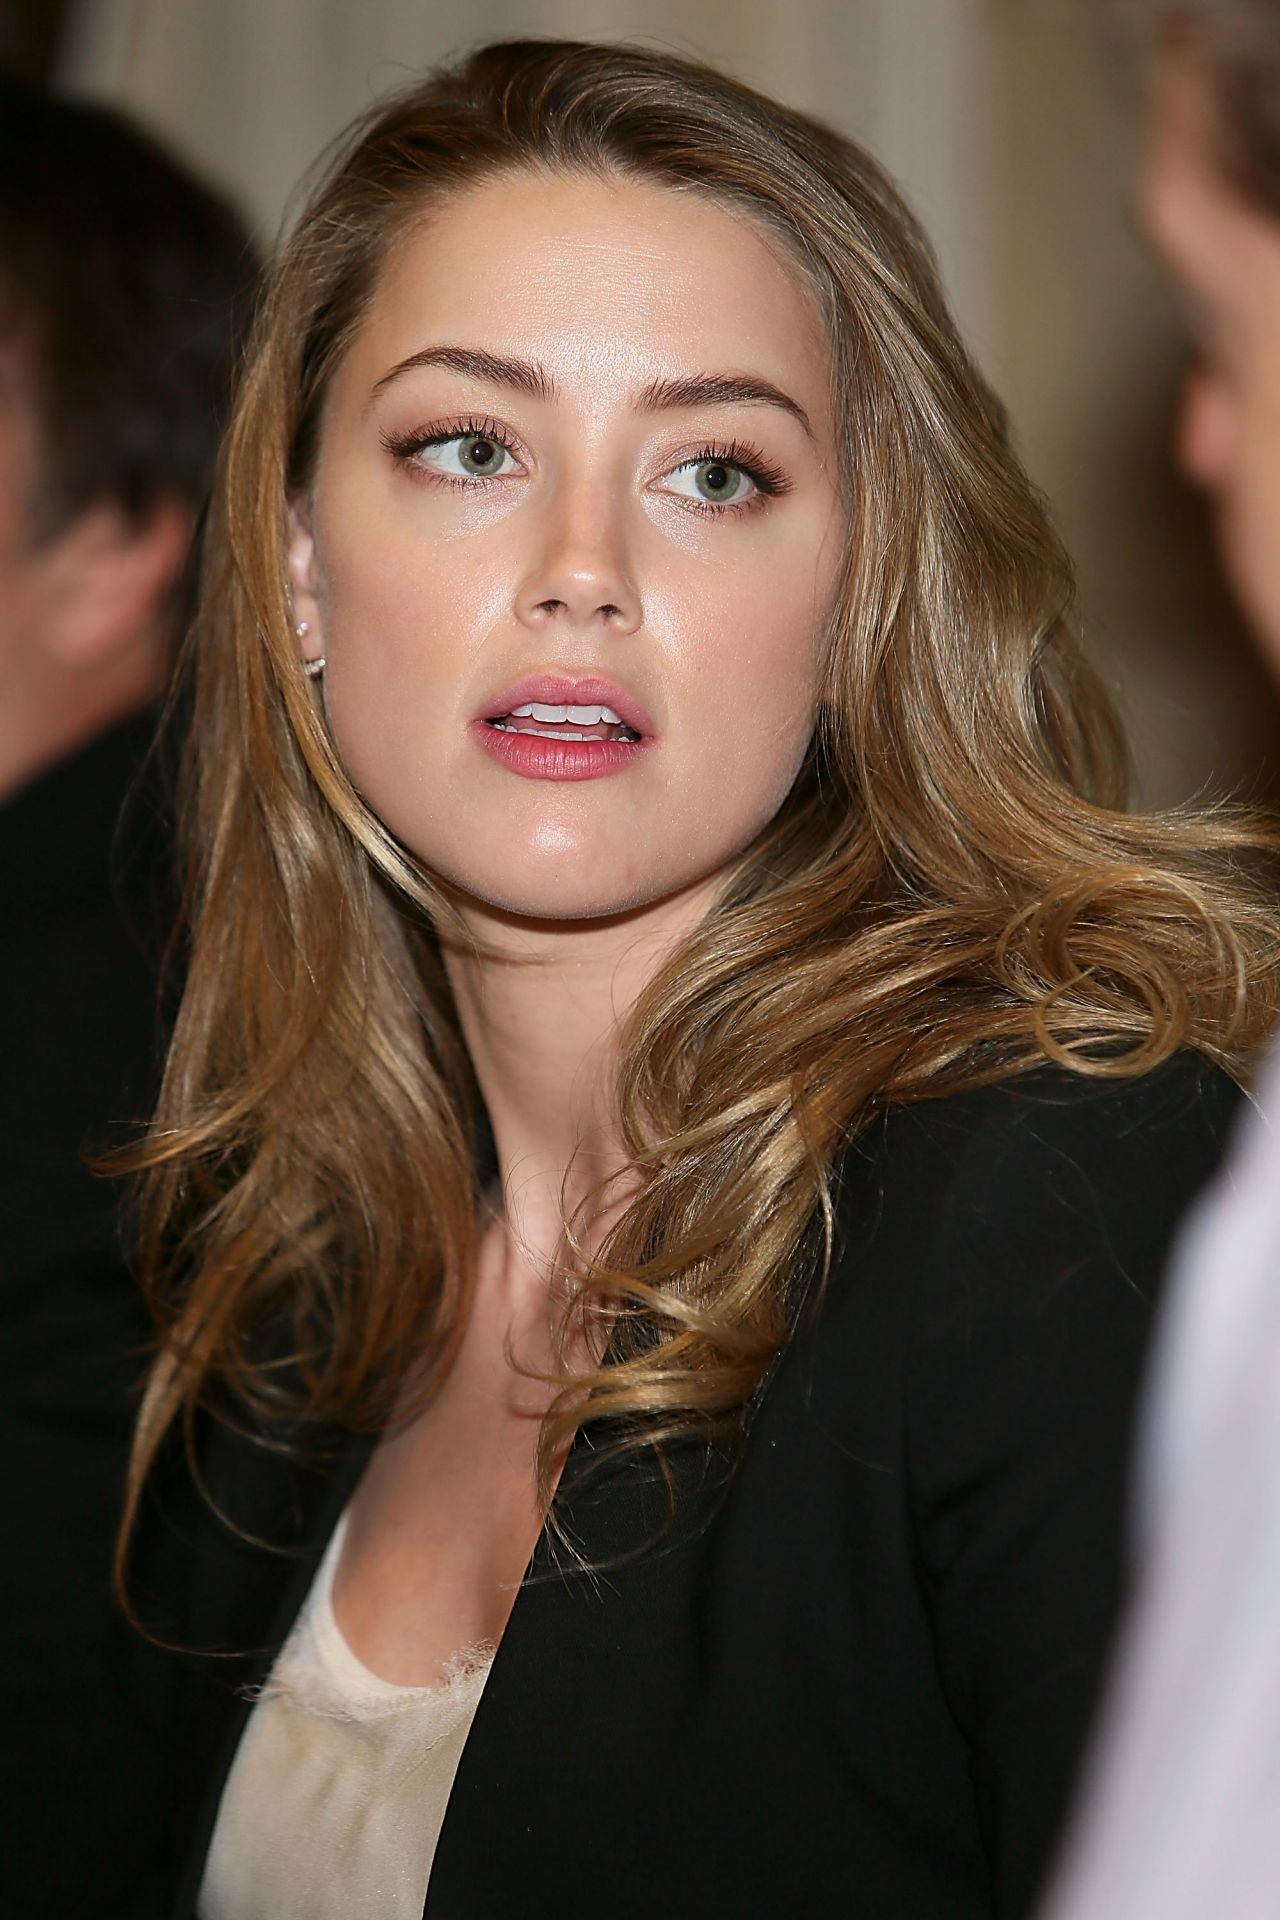 Amber Heard - 2014 Texas Film Awards Press Conference